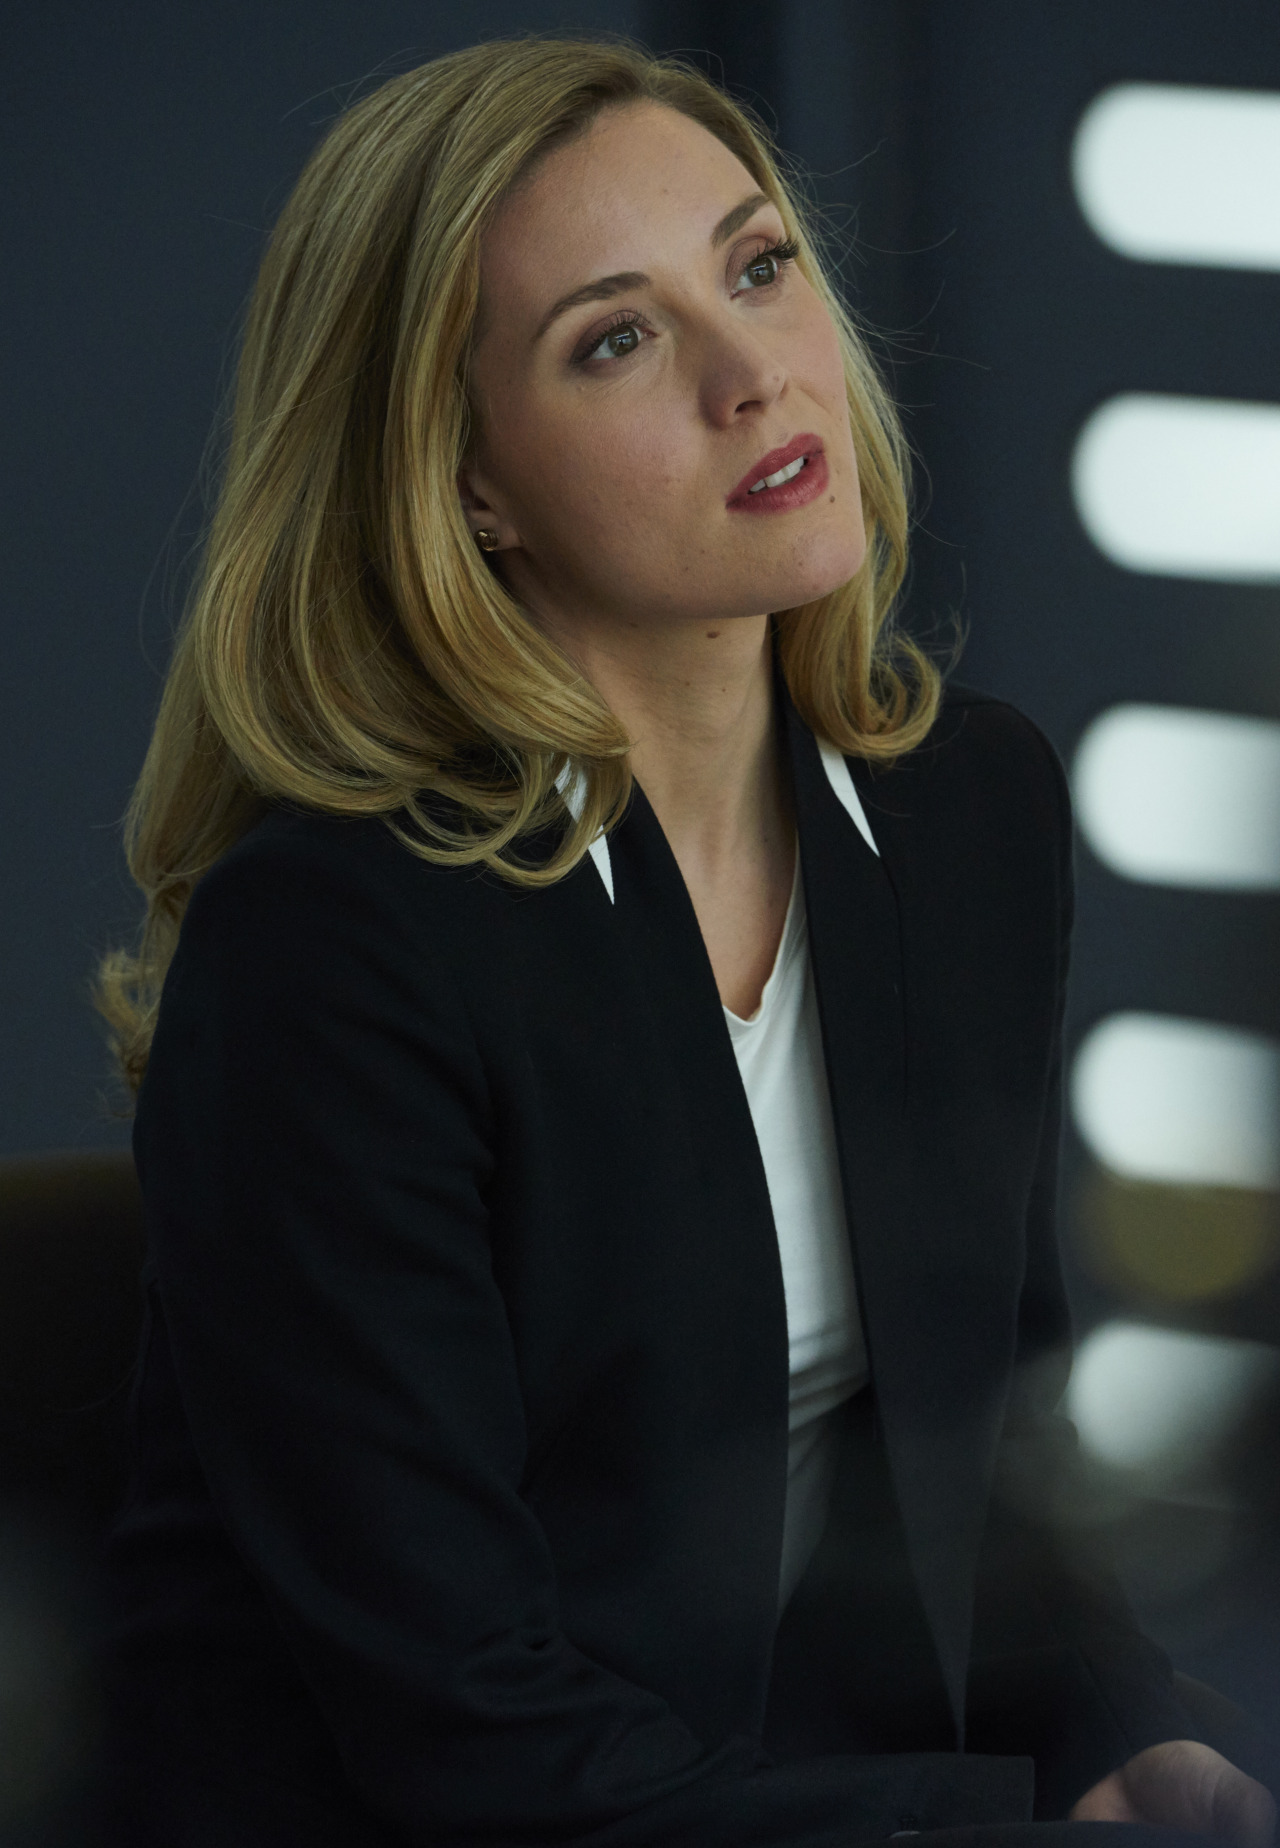 delphine cormier how tall